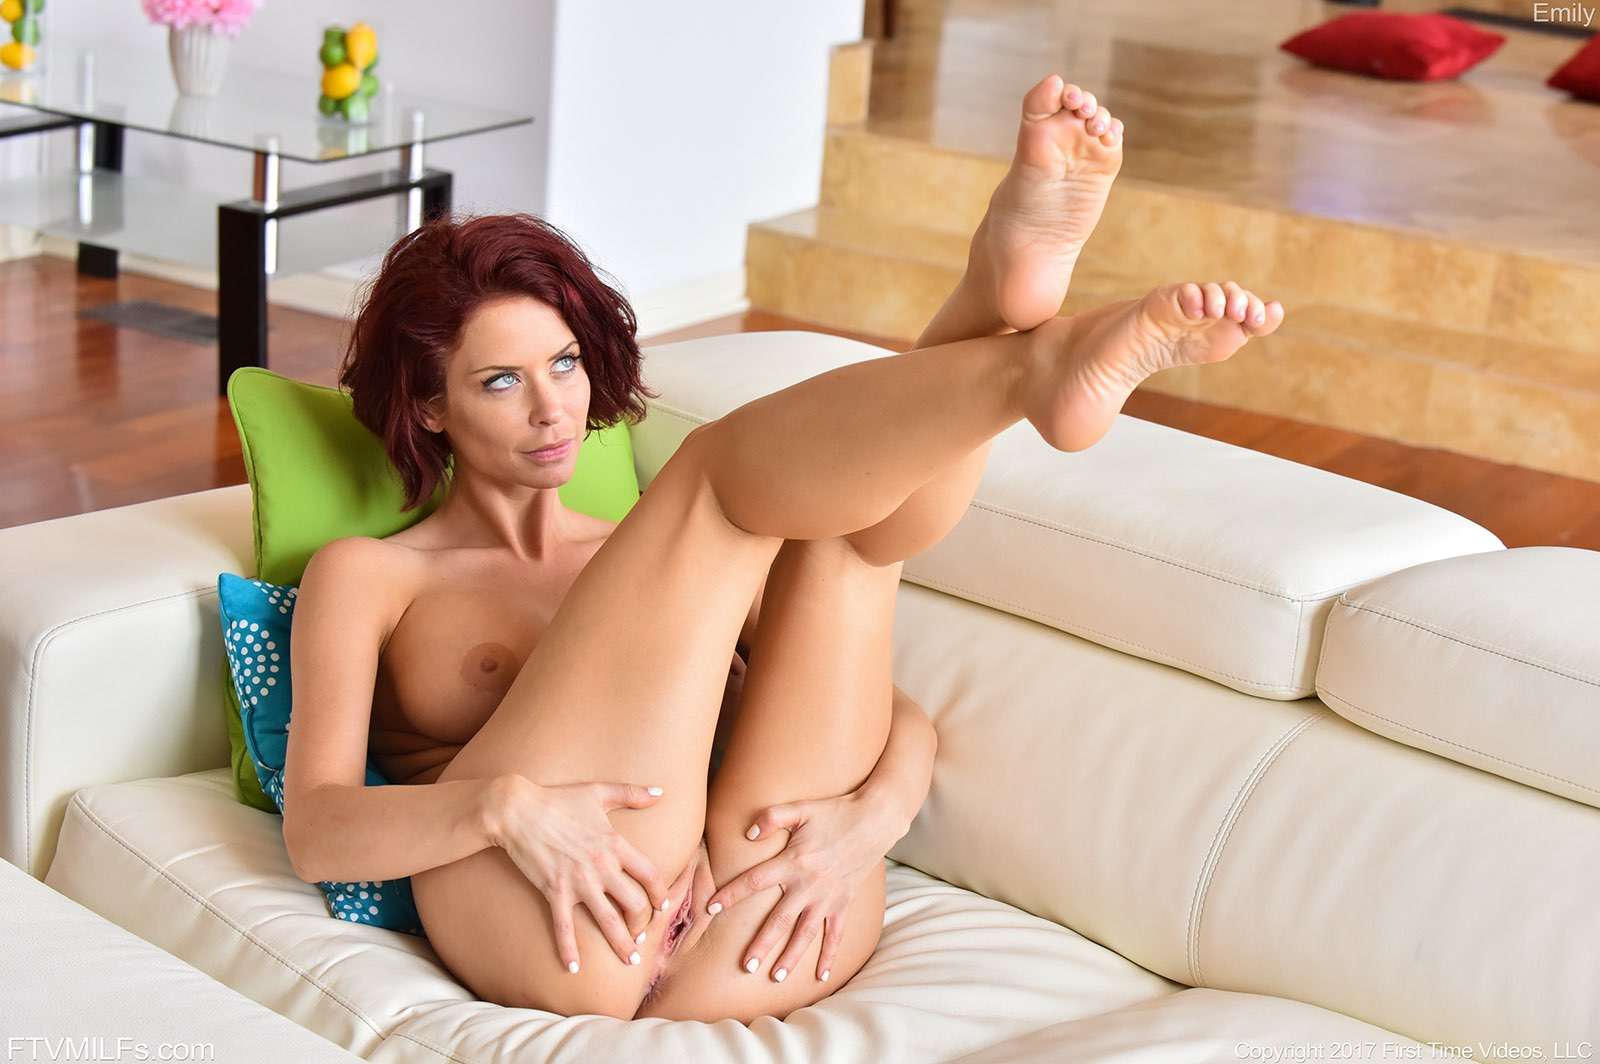 emily addison in her morning workoutftv-milfs (15 nude photos